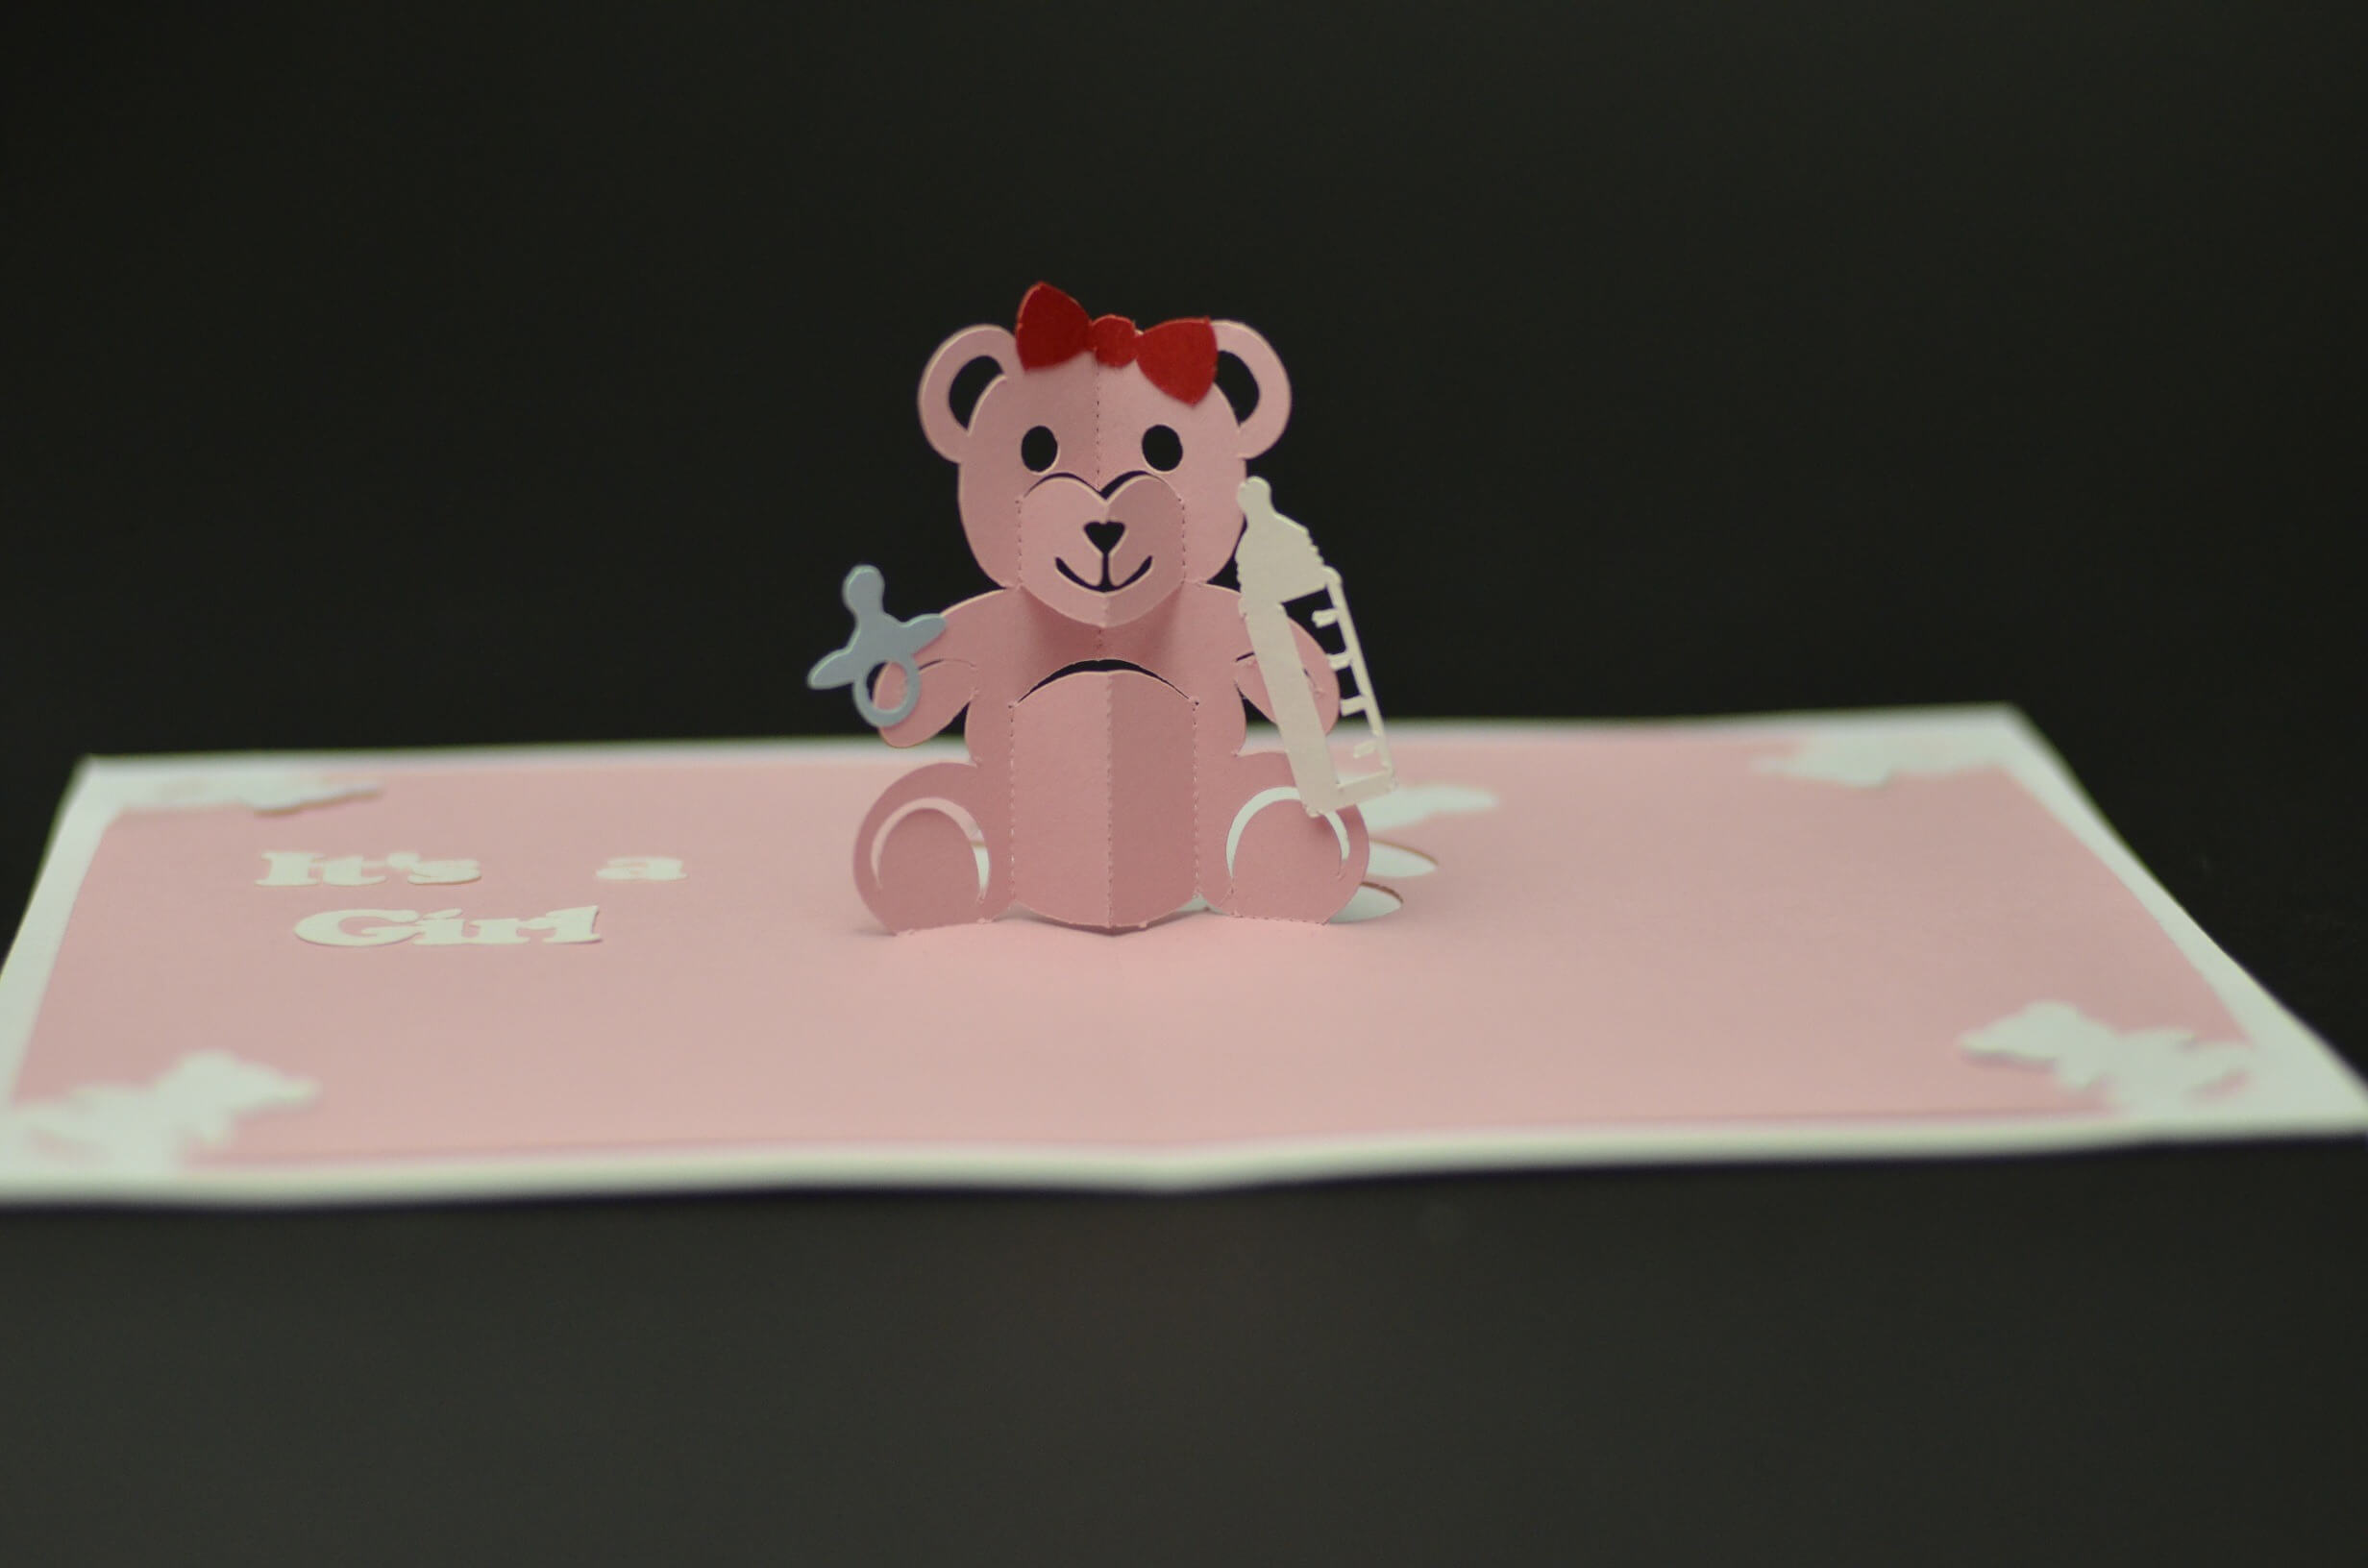 Chocoviolet: How To Make Teddy Bear Pop Up Card For Wedding Pop Up Card Template Free